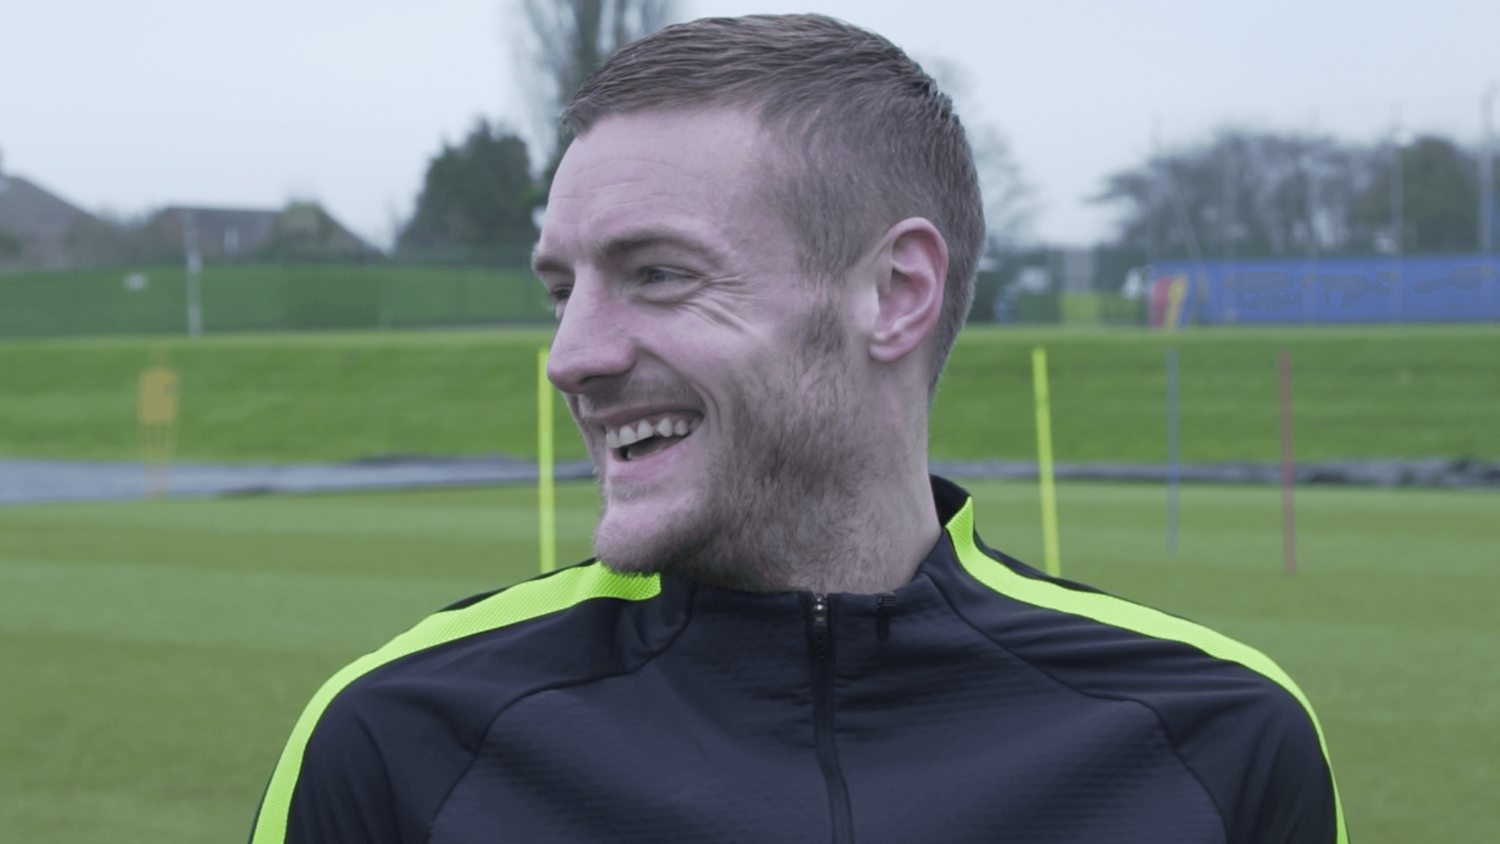 Jamie Vardy Takes On The 5 Shot Challenge!